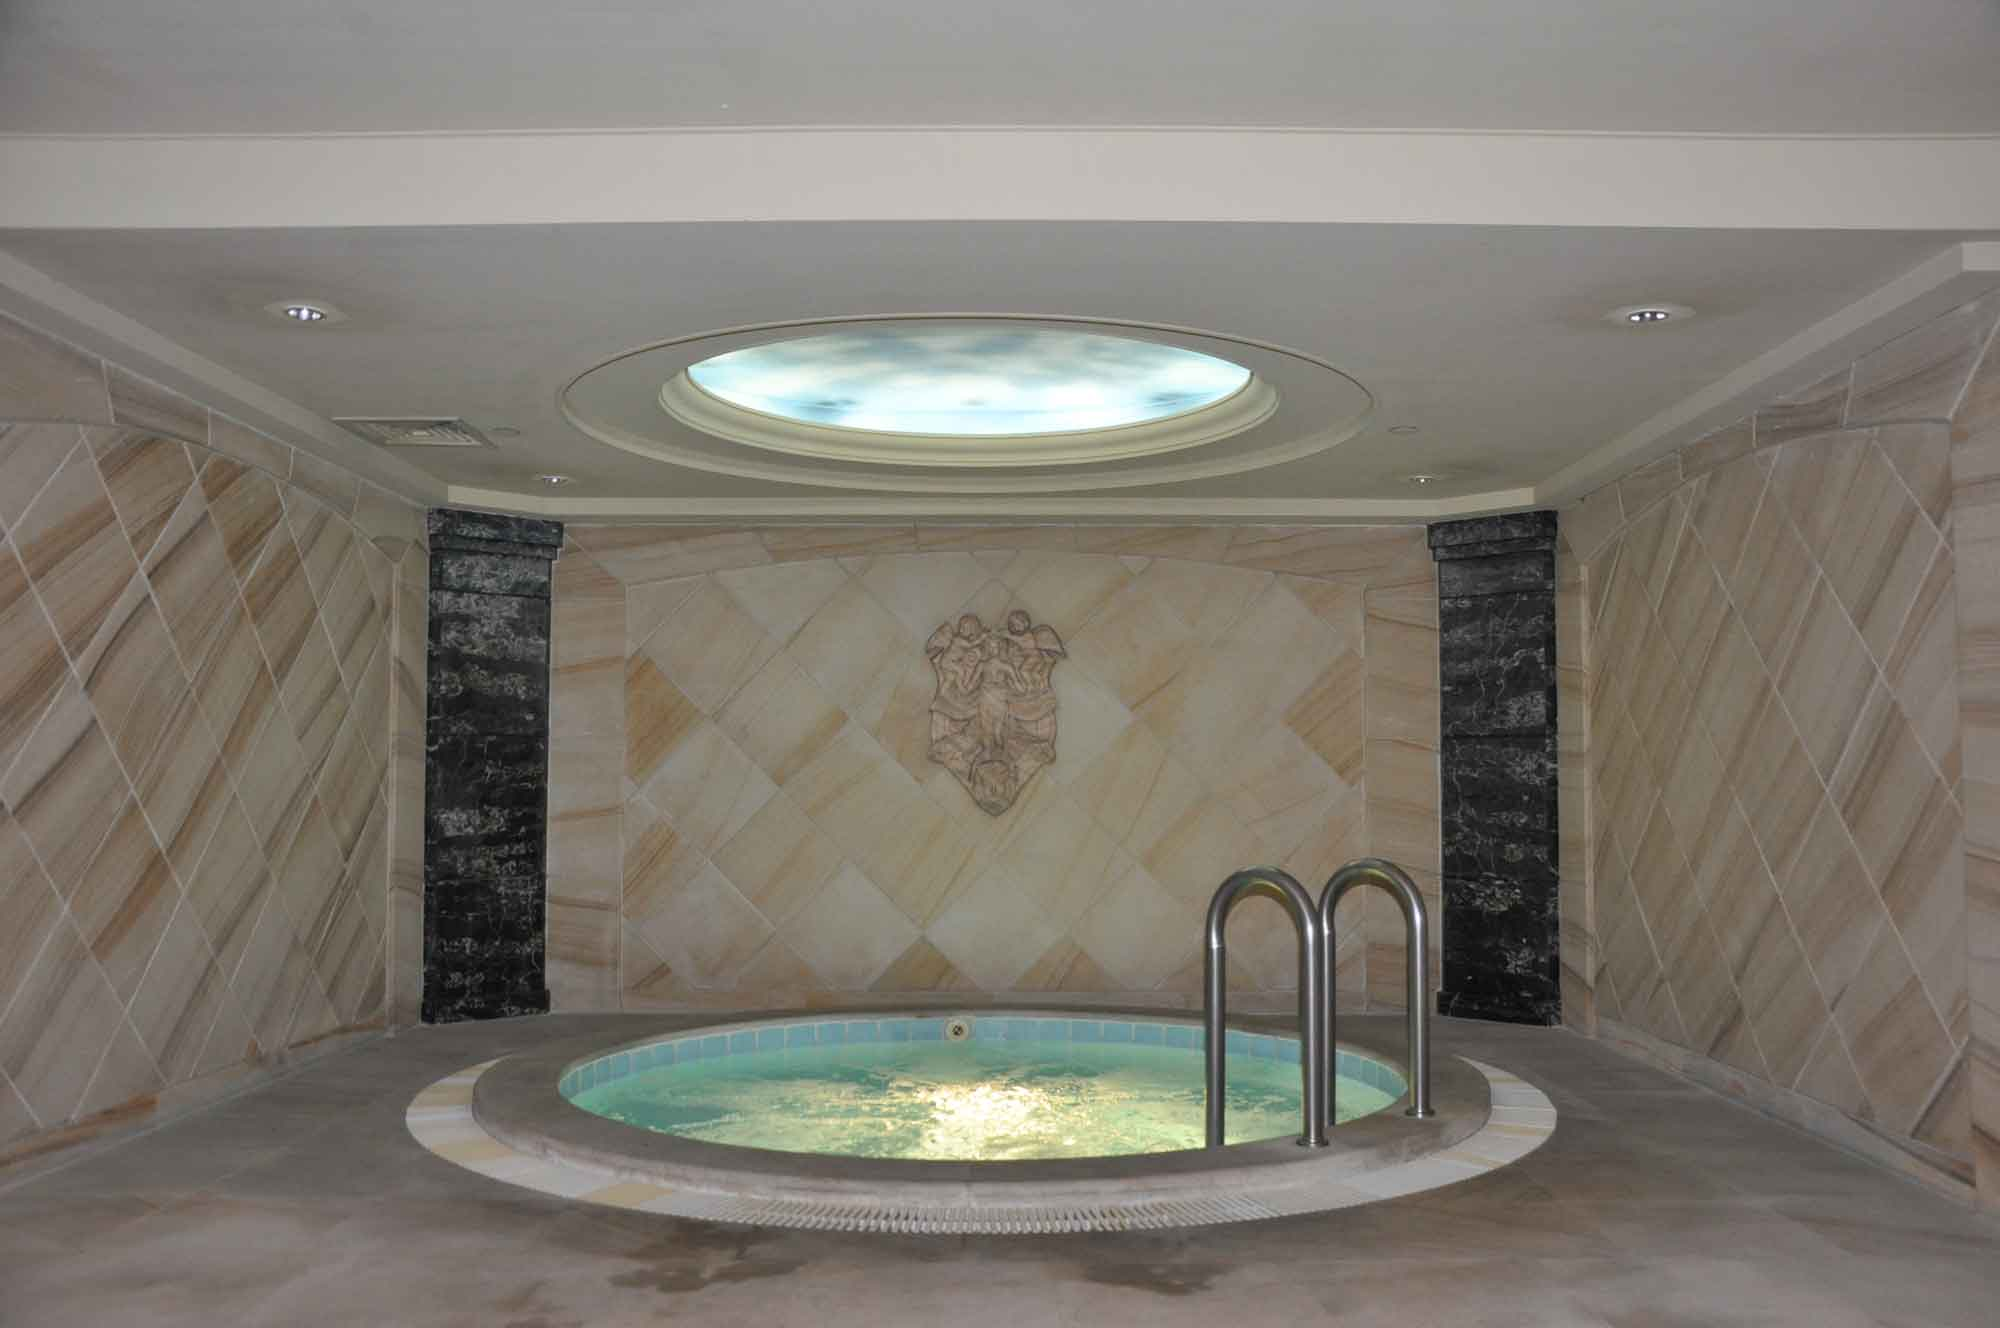 New Orient Landmark Deluxe room jacuzzi